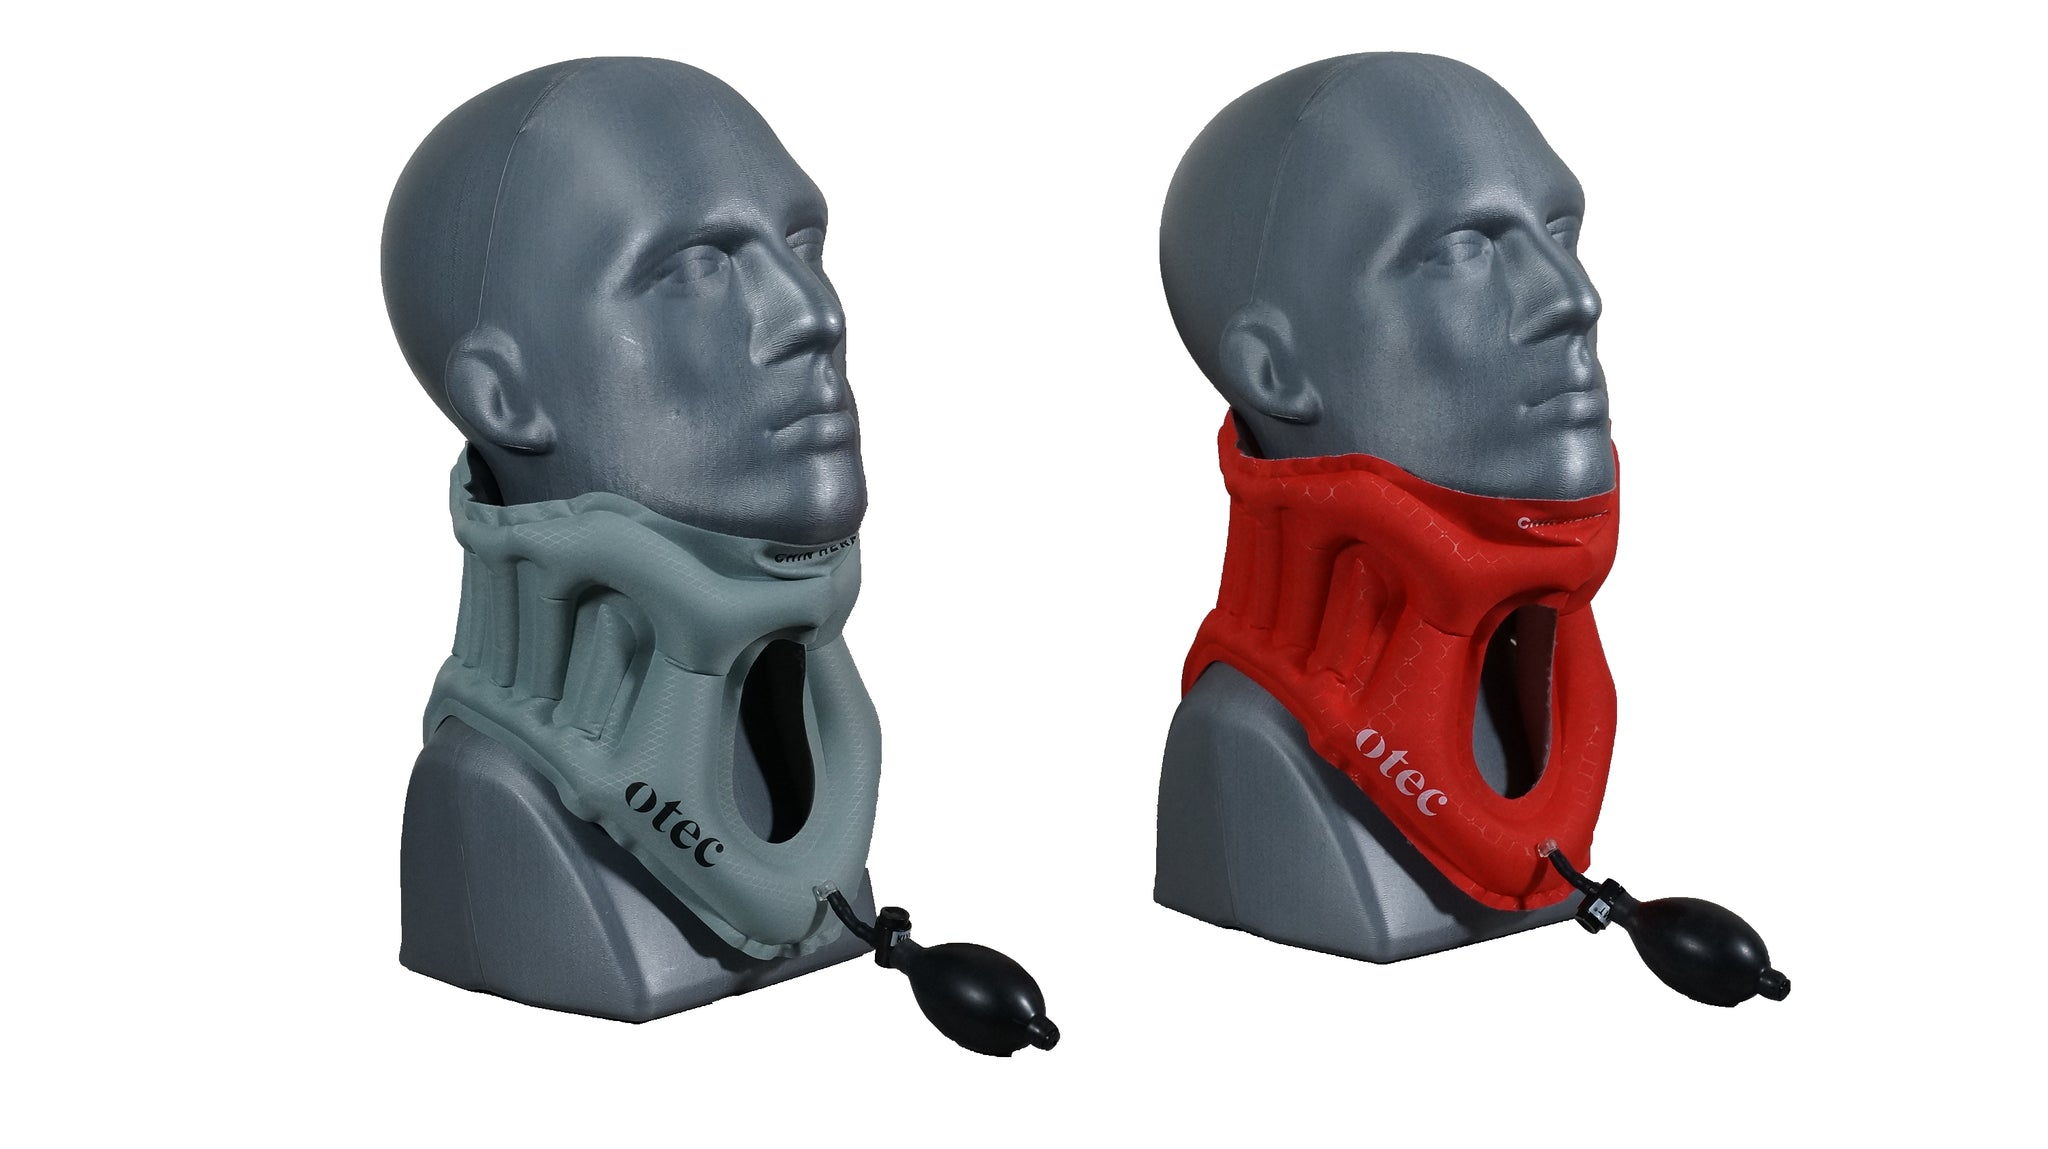 Side view of the AER Cervical Collar inflated